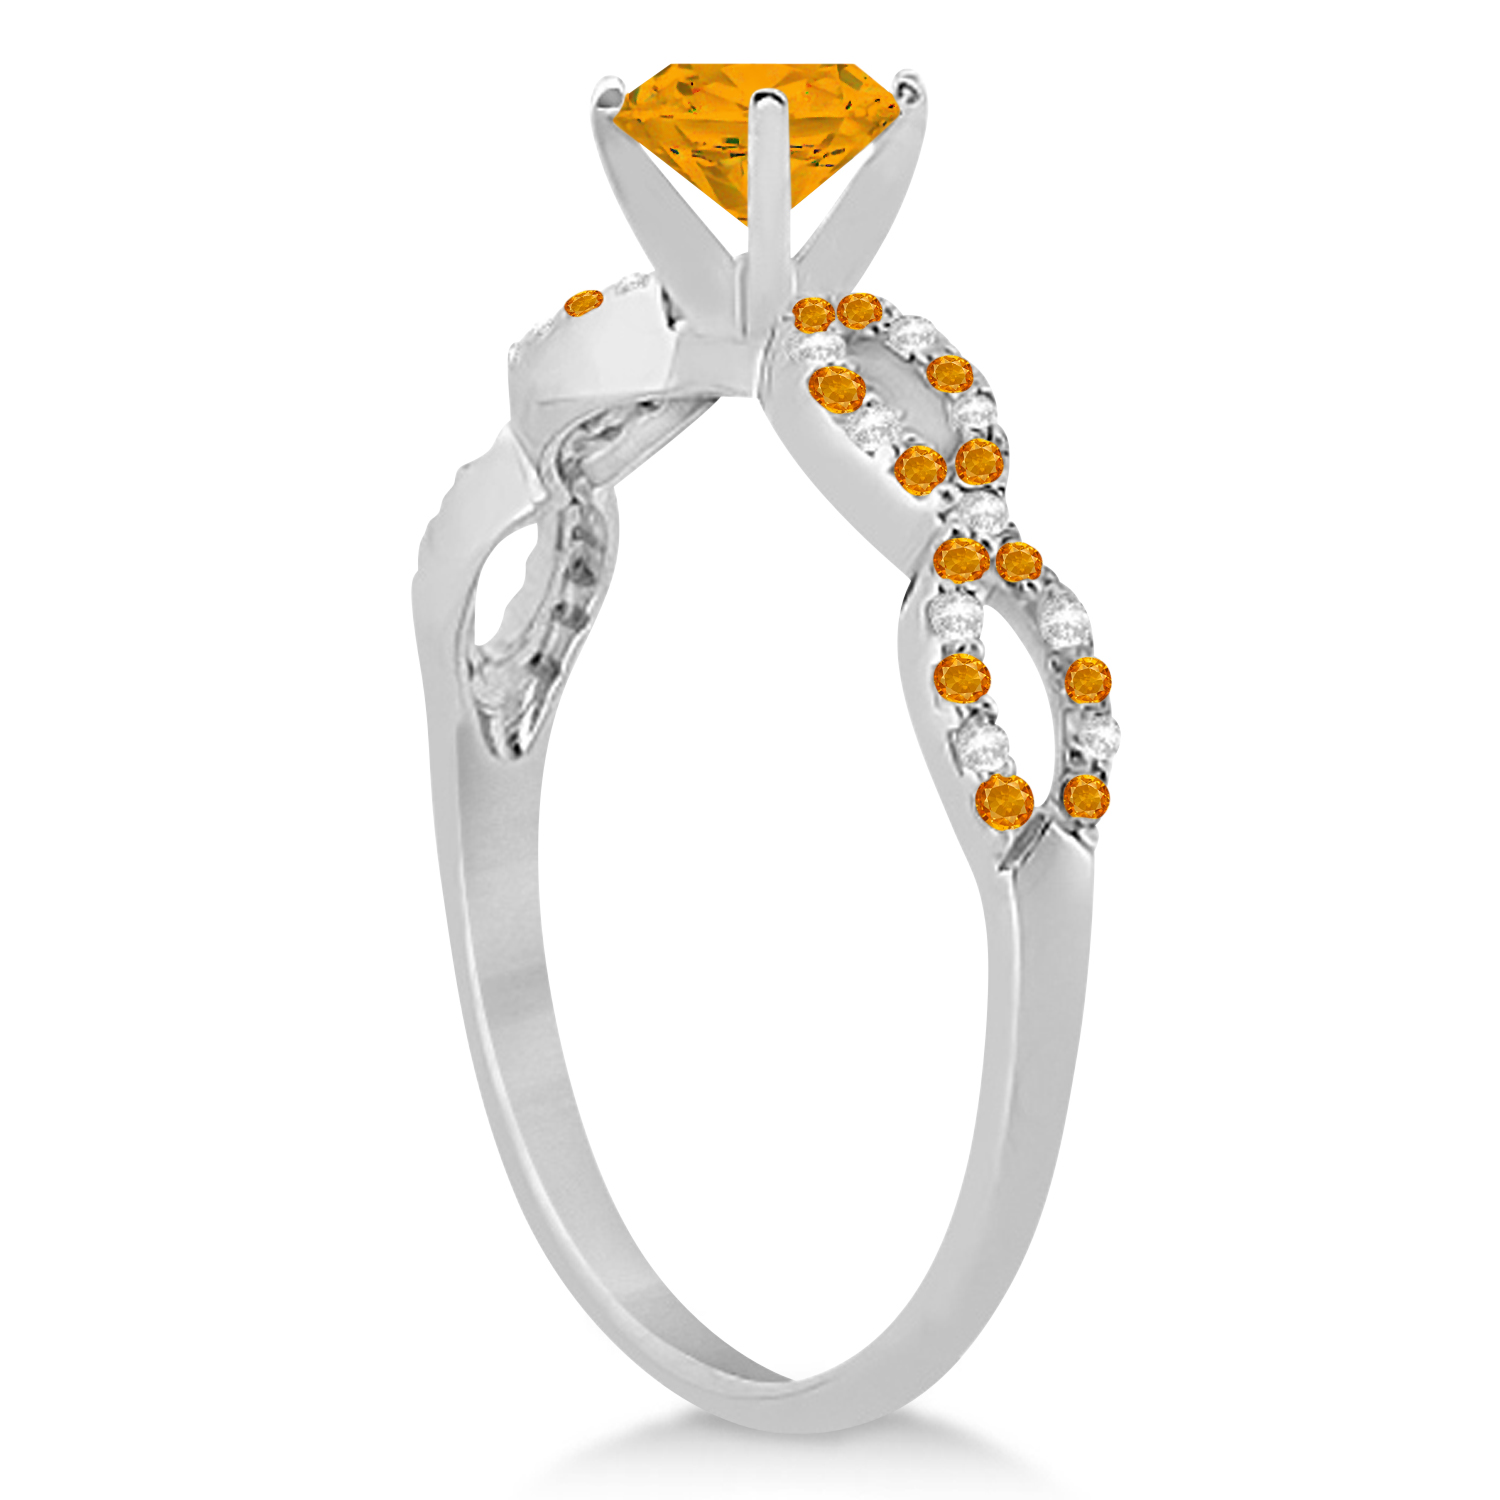 Diamond & Citrine Infinity Engagement Ring 14K White Gold 1.45ct